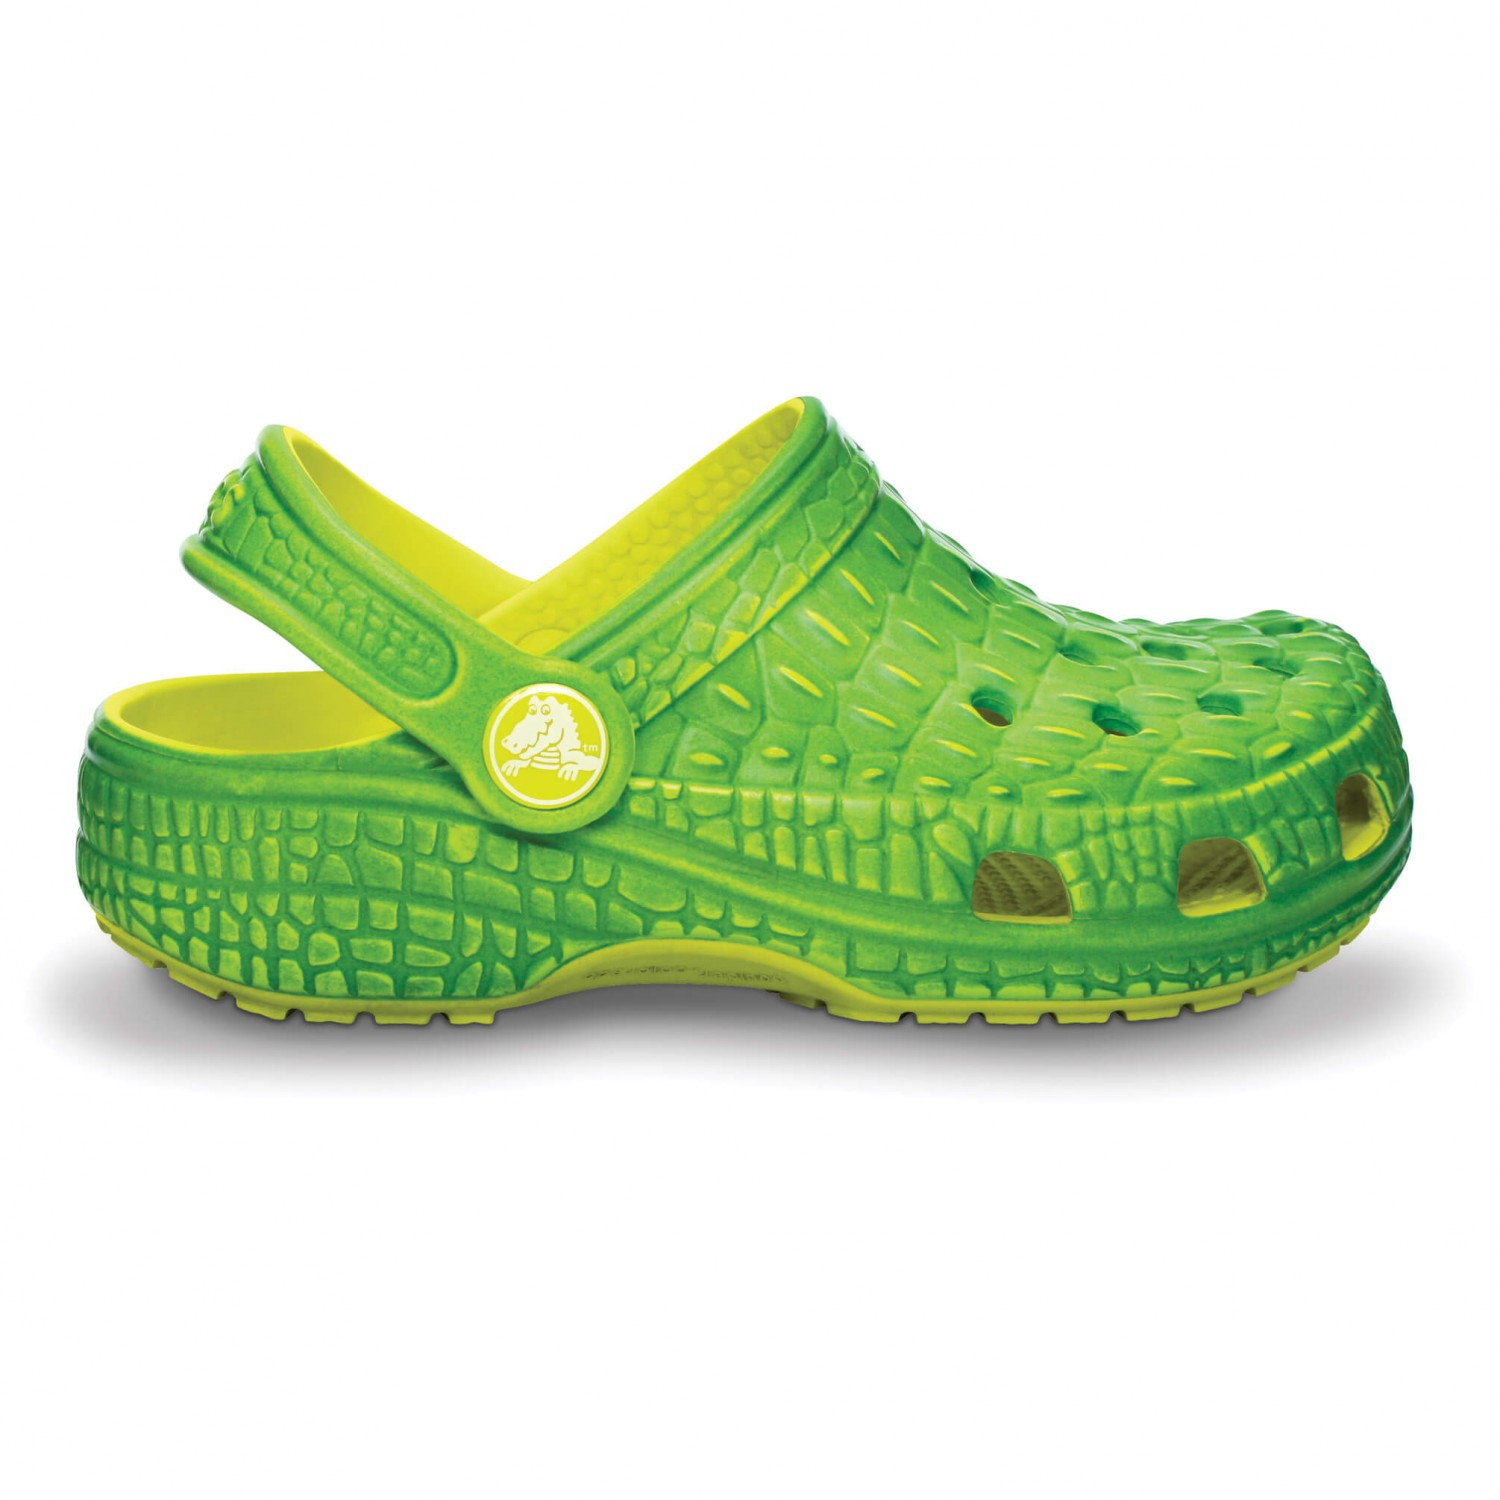 Crocs Kids' Boys and Girls Classic Graphic Fuzz Lined Clog Shoe, Indoor or Outdoor Warm Toddler Slipper Option by Crocs $ - $ $ 17 99 - $ 12 Prime.